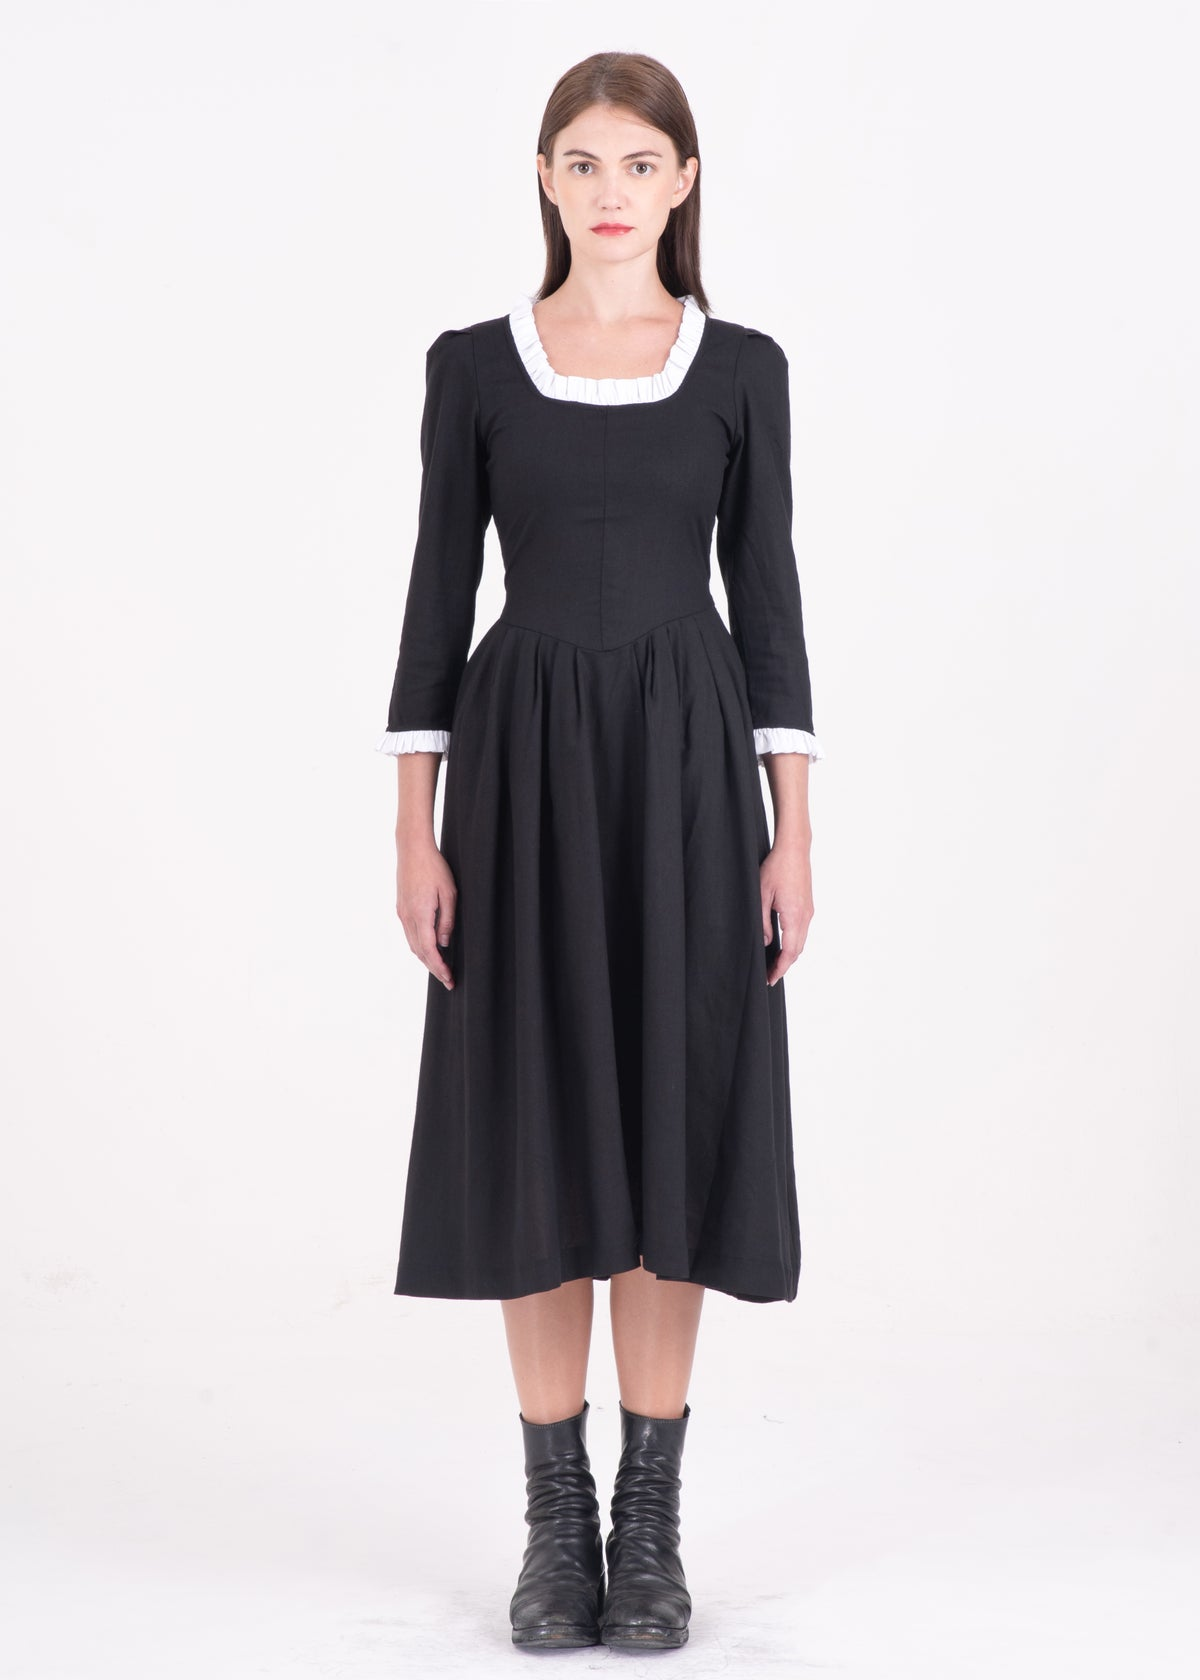 Image of Molly Day Dress